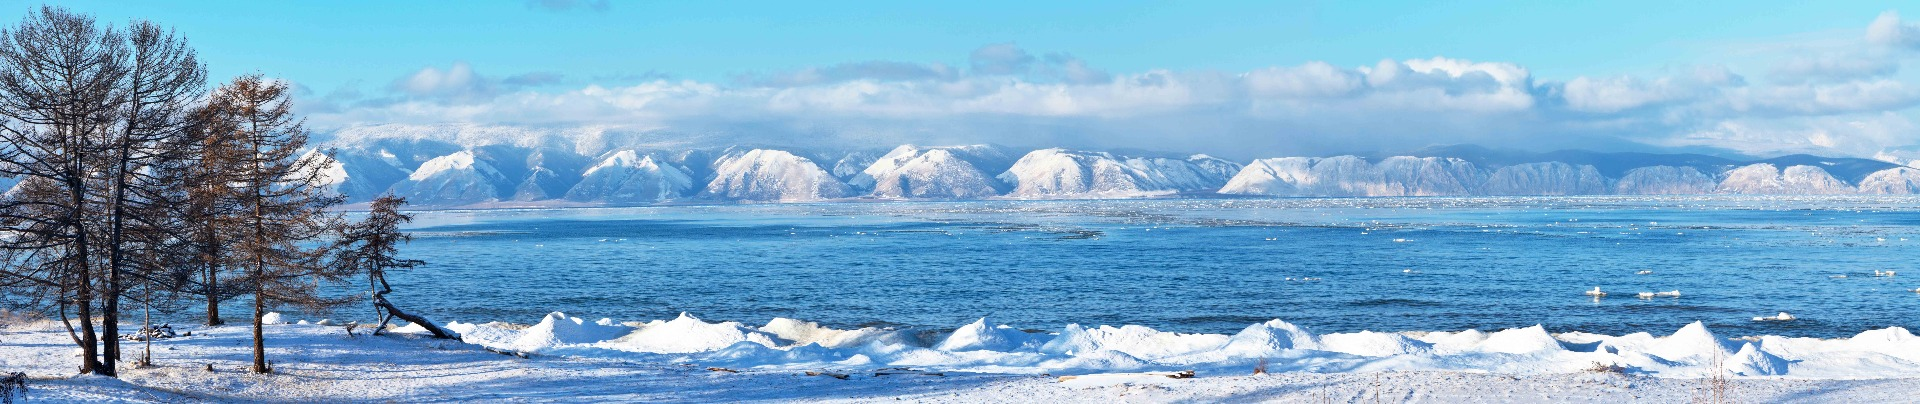 Christmas Holidays at Lake Baikal